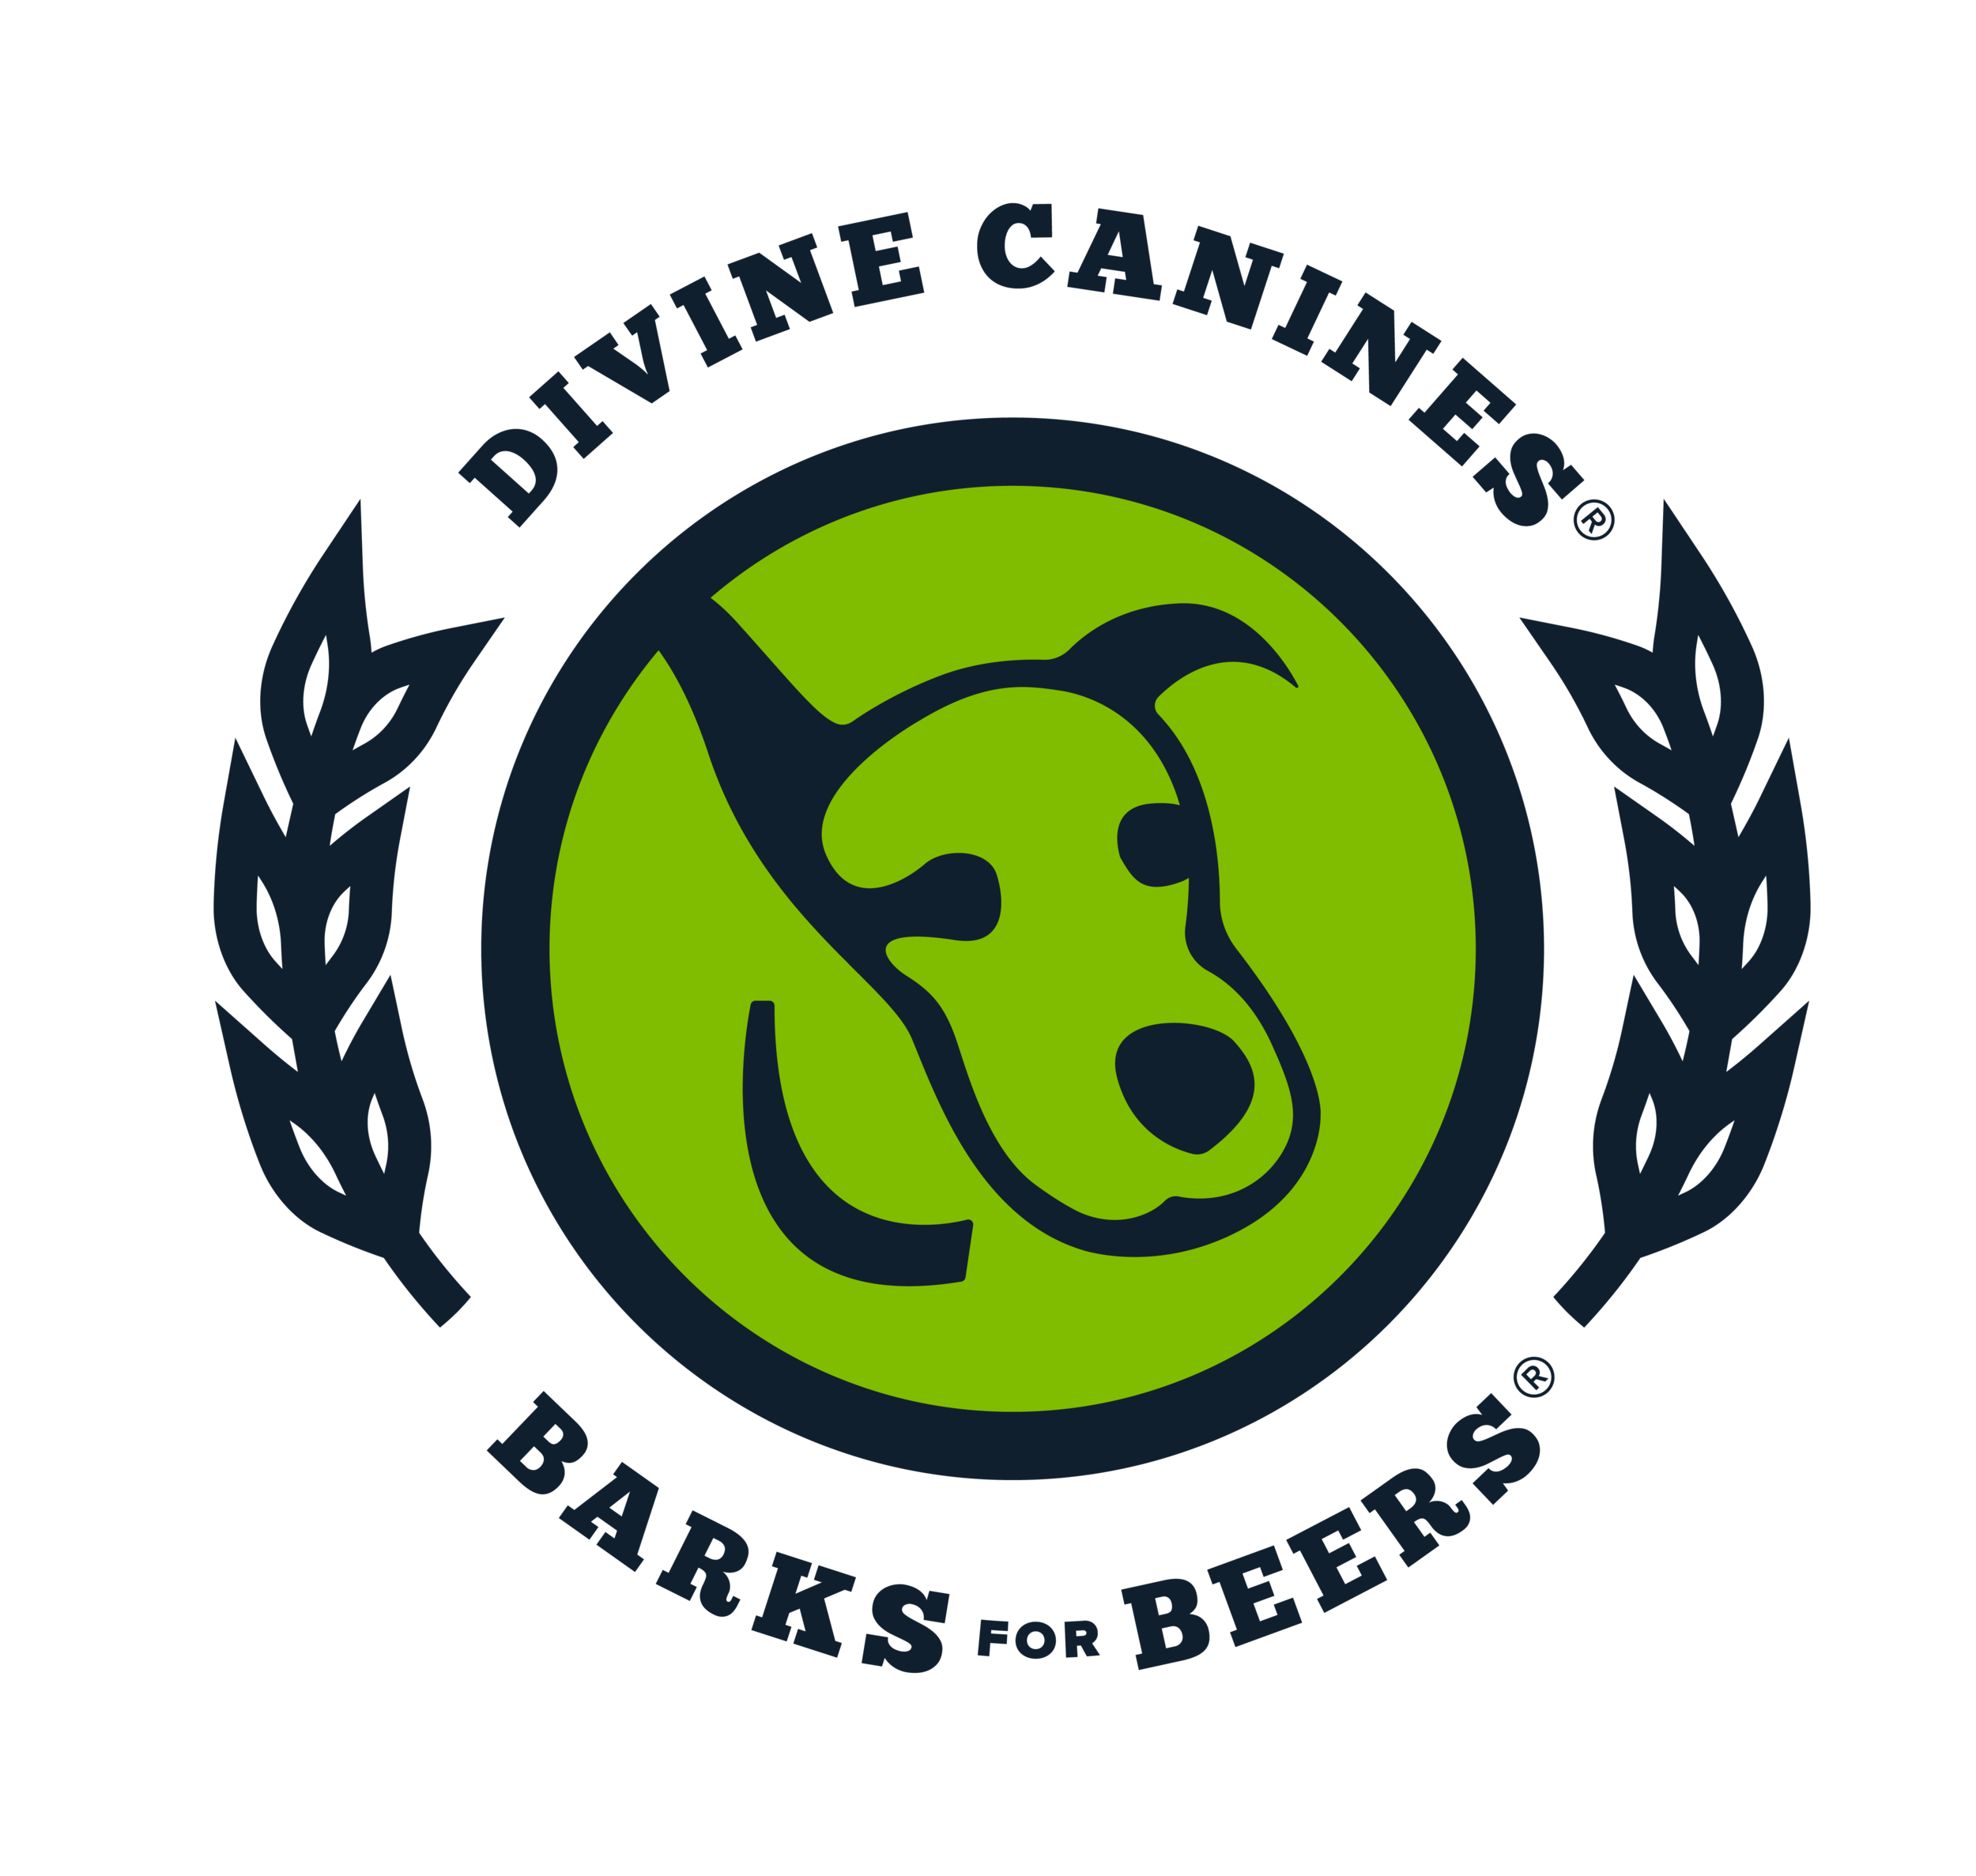 Logo - Using Divine Canine's current logo, as well as their green and blue color palette, we created a new for the event emphasizing that this was a related event.